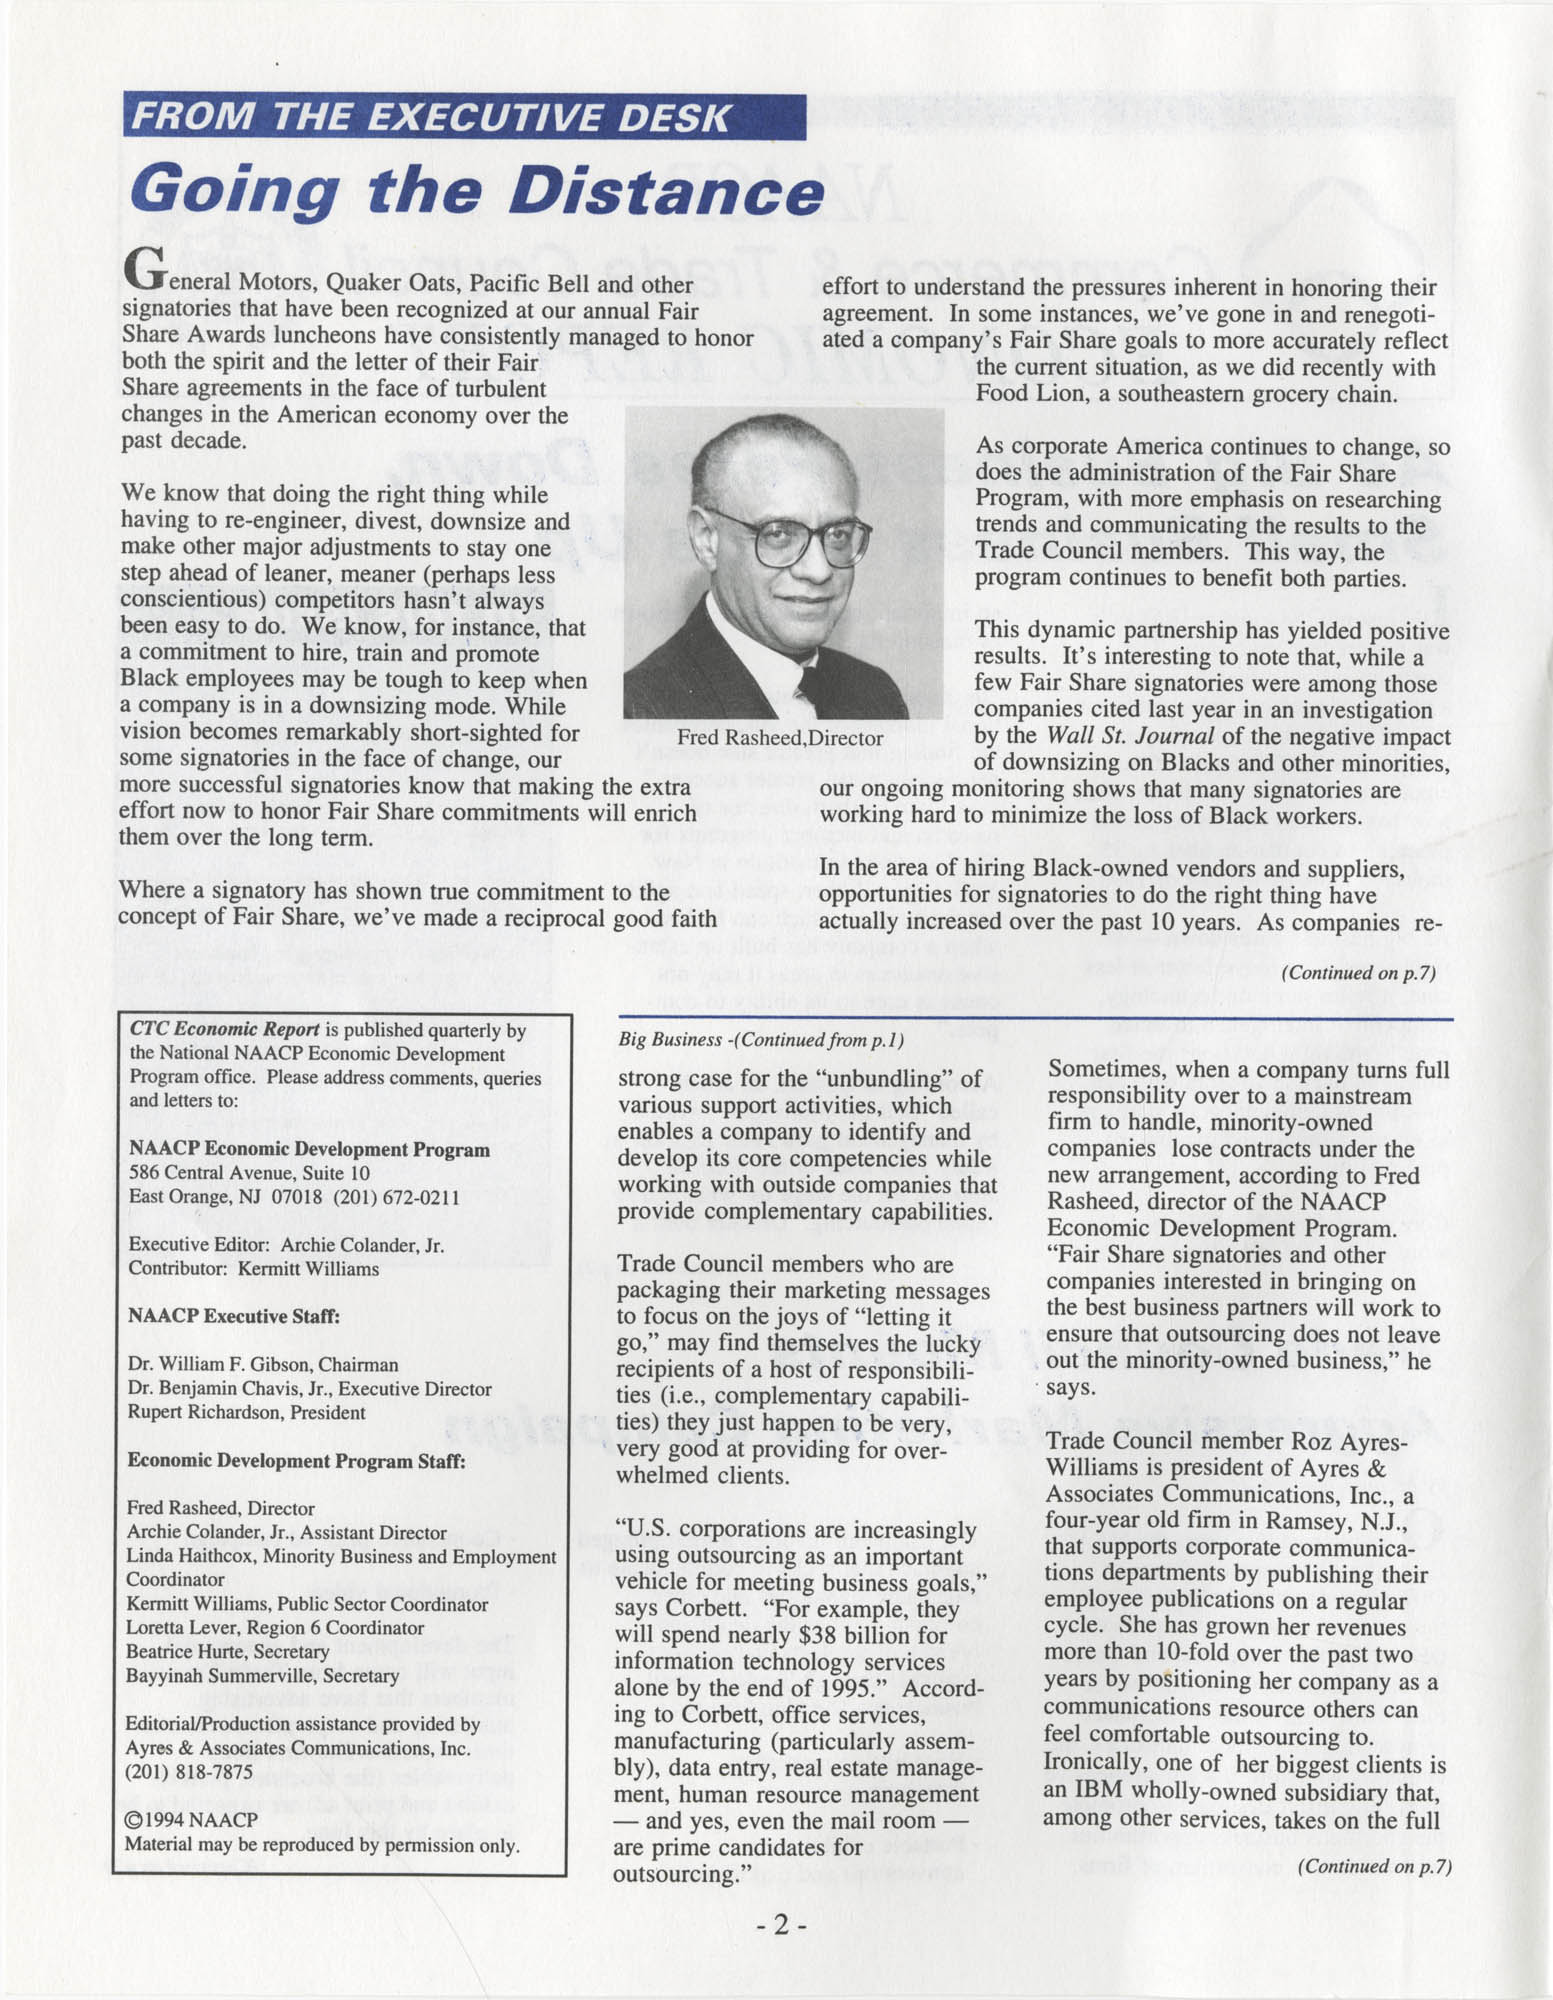 NAACP Commerce and Trade Council Economic Report, Spring 1994, Vol. 3, No. 1, Page 2